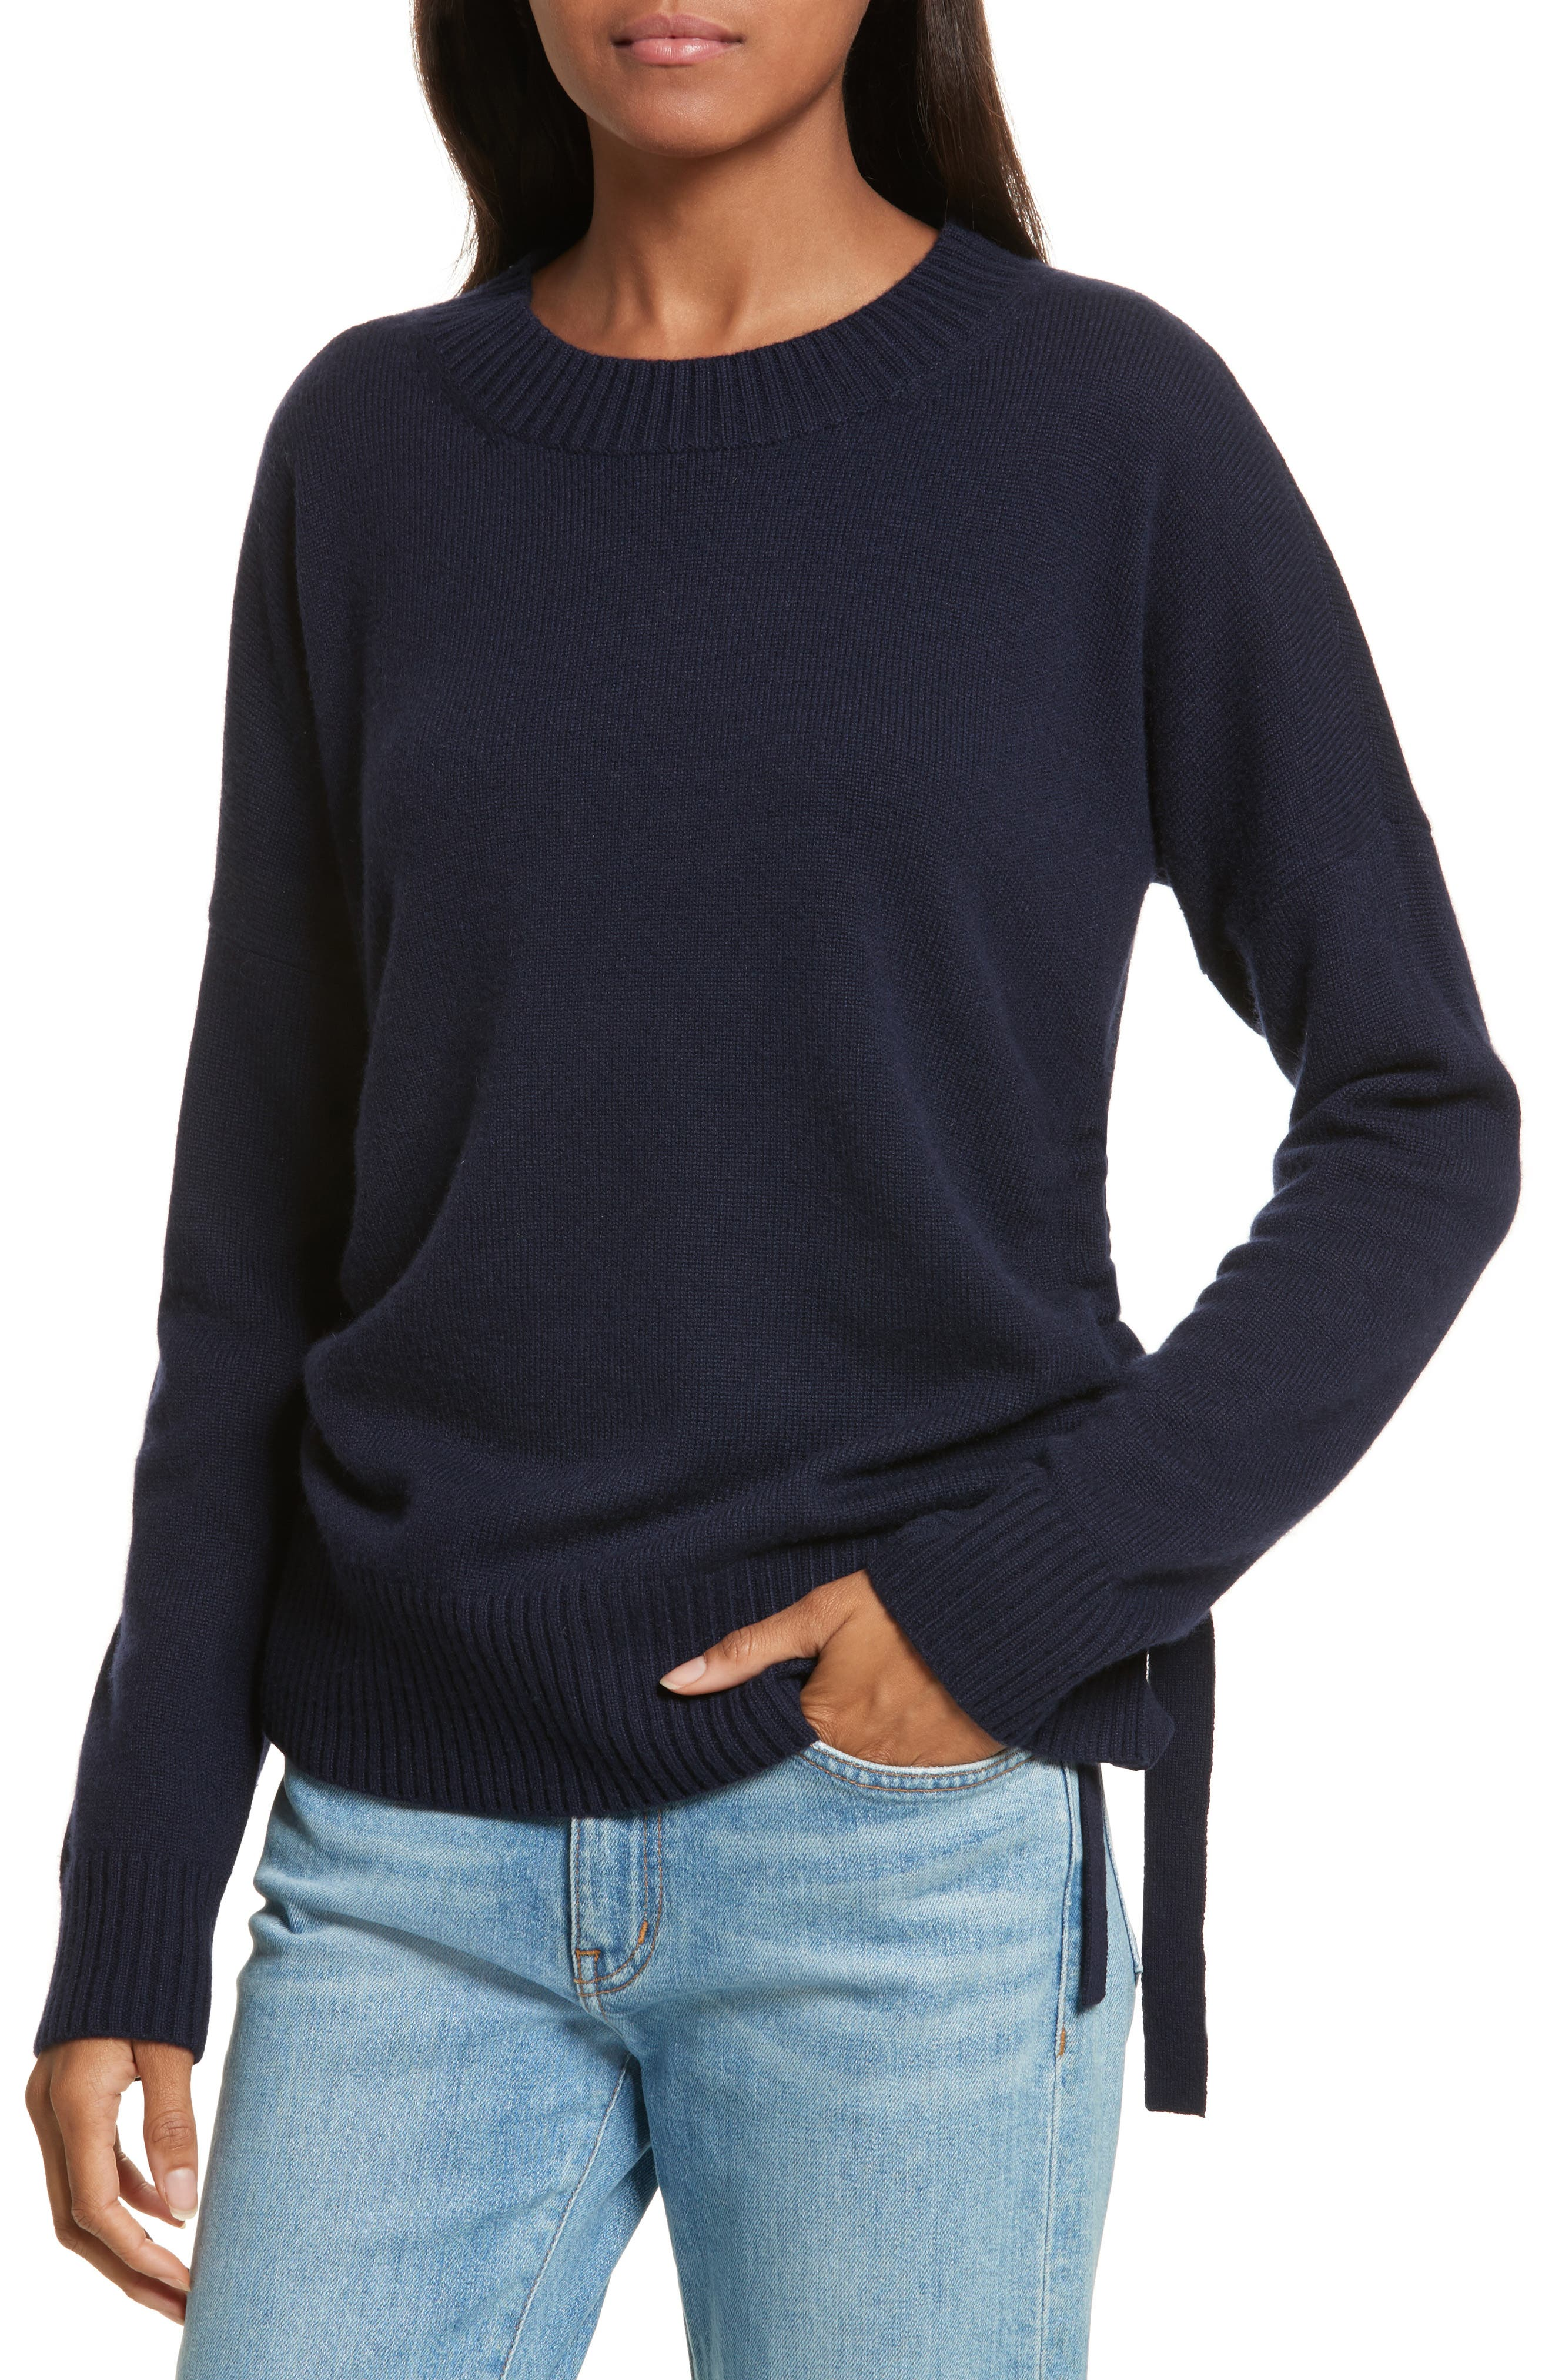 Derek Lam 10 Crosby Side Tie Cashmere Sweater